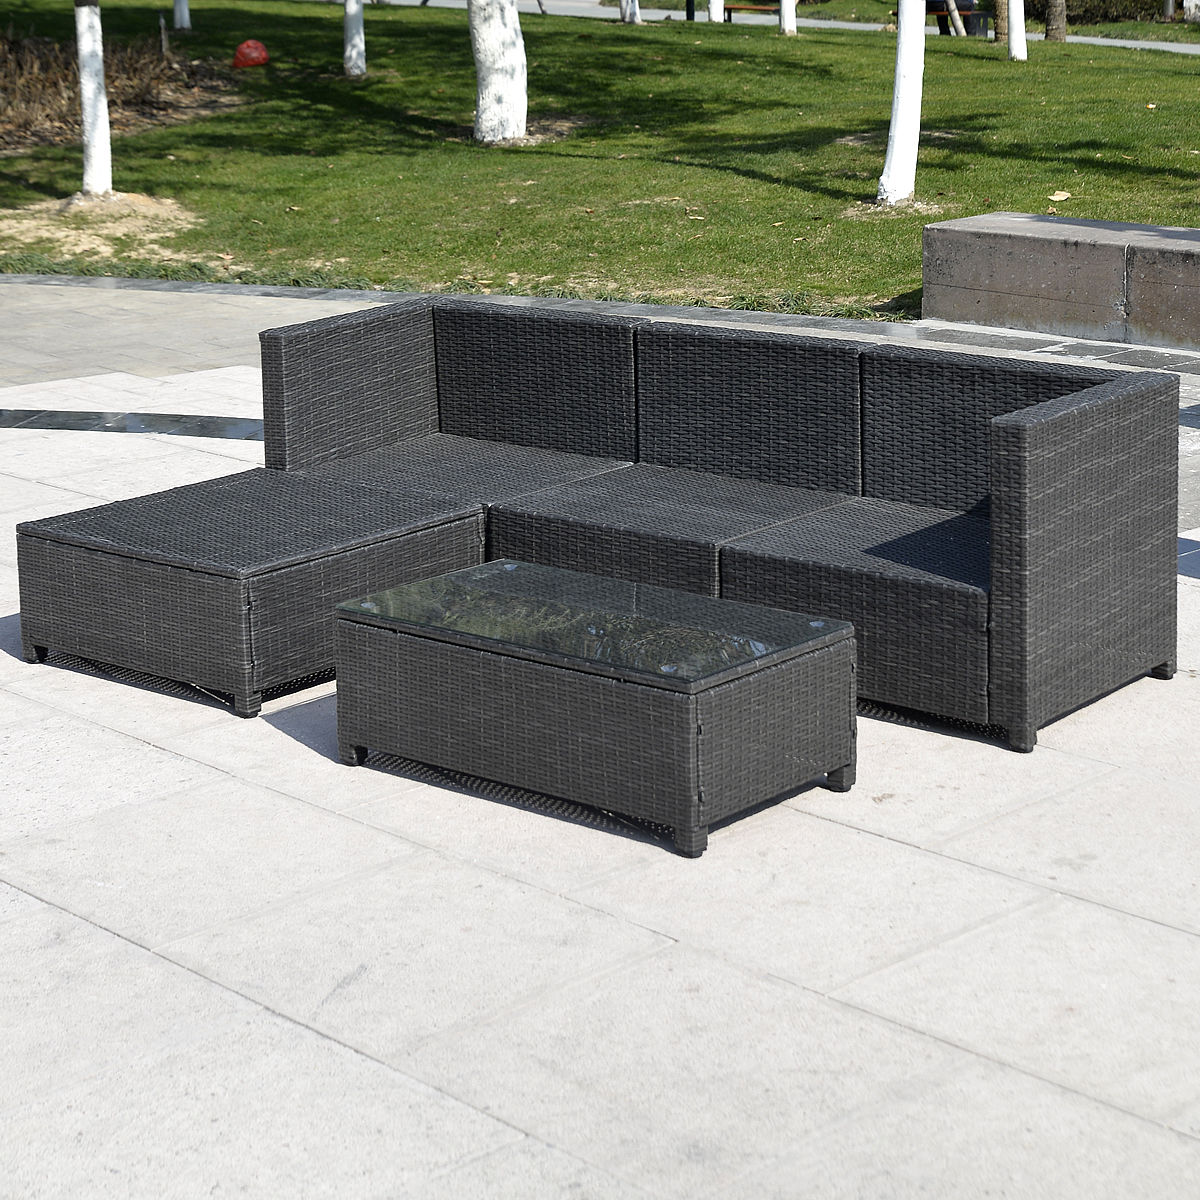 Outdoor Patio Wicker Sofa Set 5pc Pe Rattan